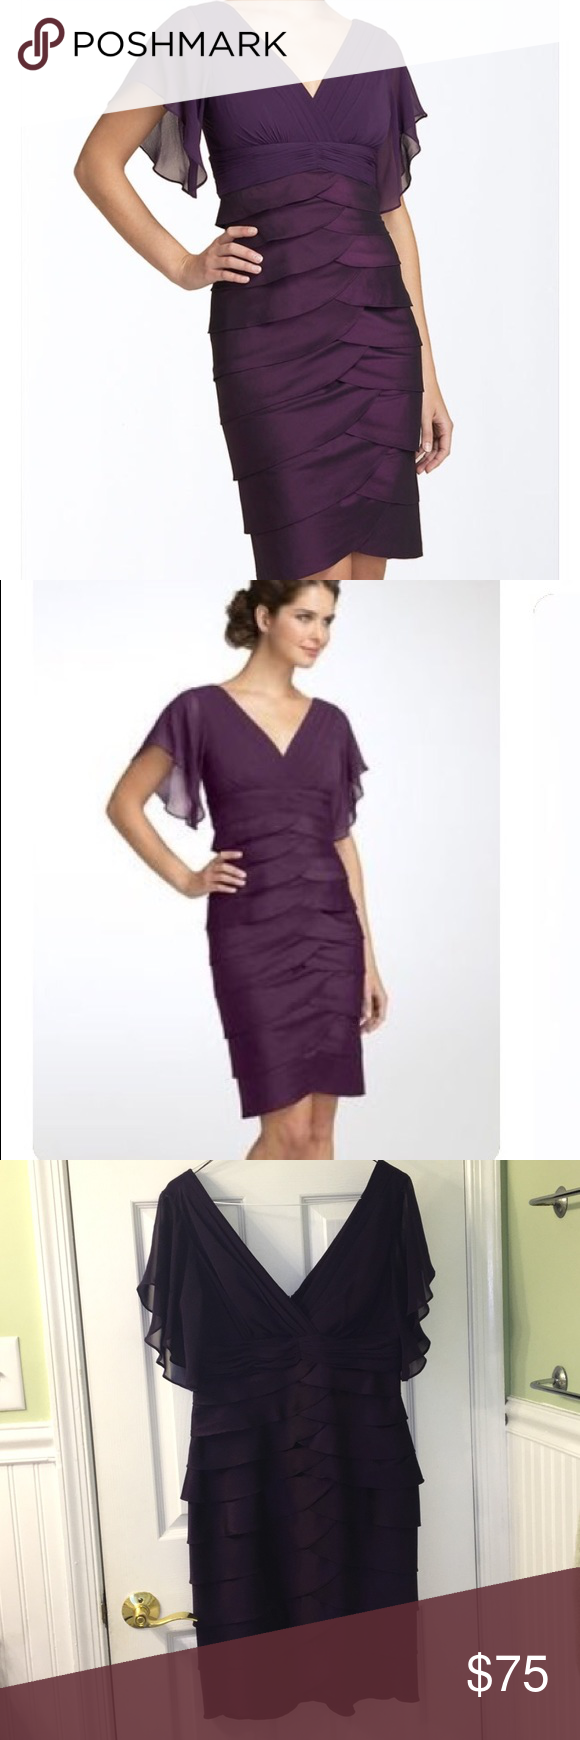 Adrianna Papell flutter sleeve tiered dress Plum chiffon and rayon. Sheer flutter sleeve with rouched empire waist. Tiered stretch skirt, in shimmery plum. Excellent pre owned condition. Color is exactly like stock photo. Wonderful for weddings or work events! Fully lined. No modeling/no trades Adrianna Papell Dresses